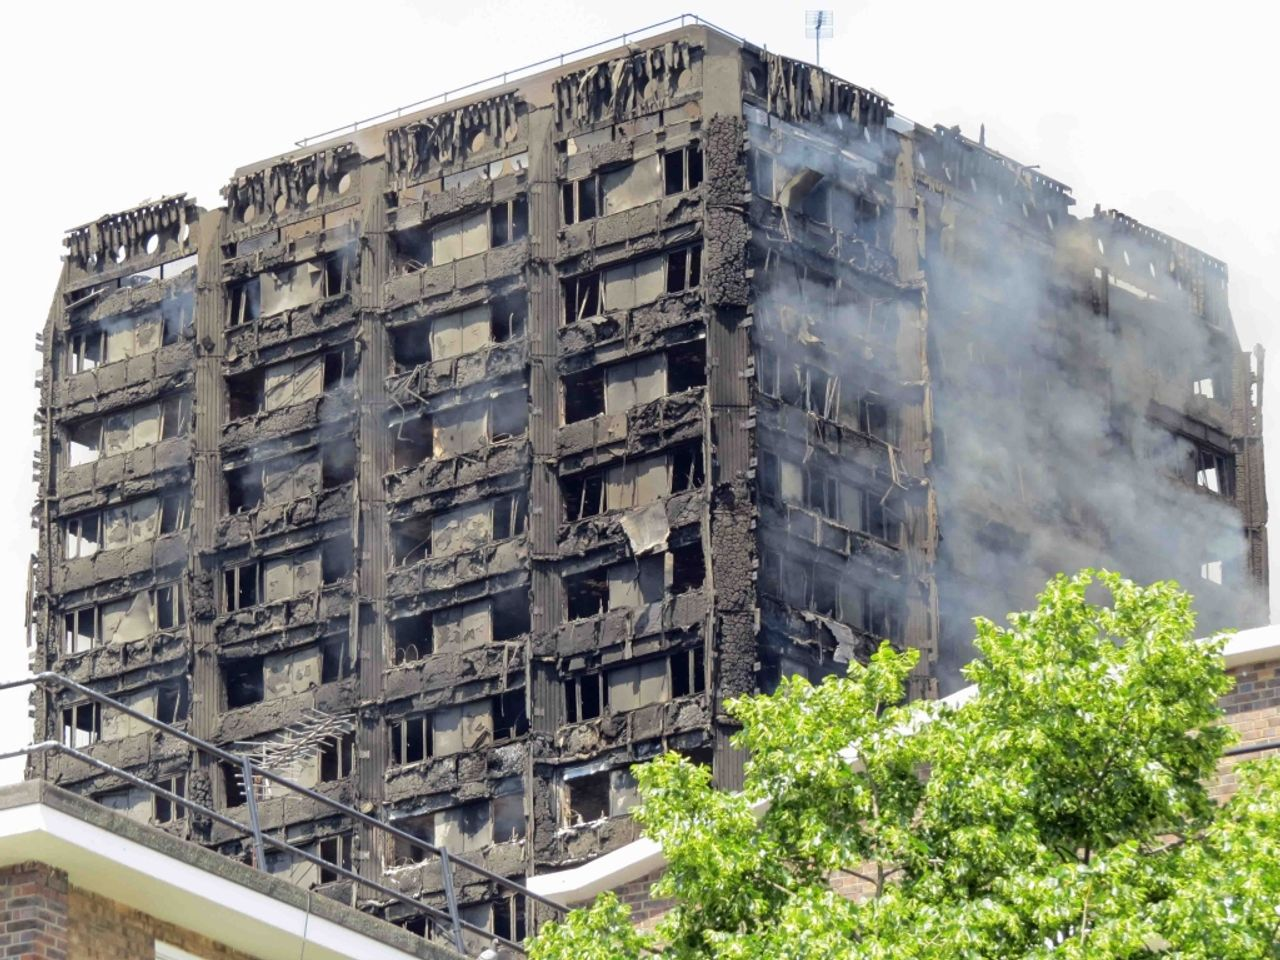 The burnt out shell of Grenfell Tower in London